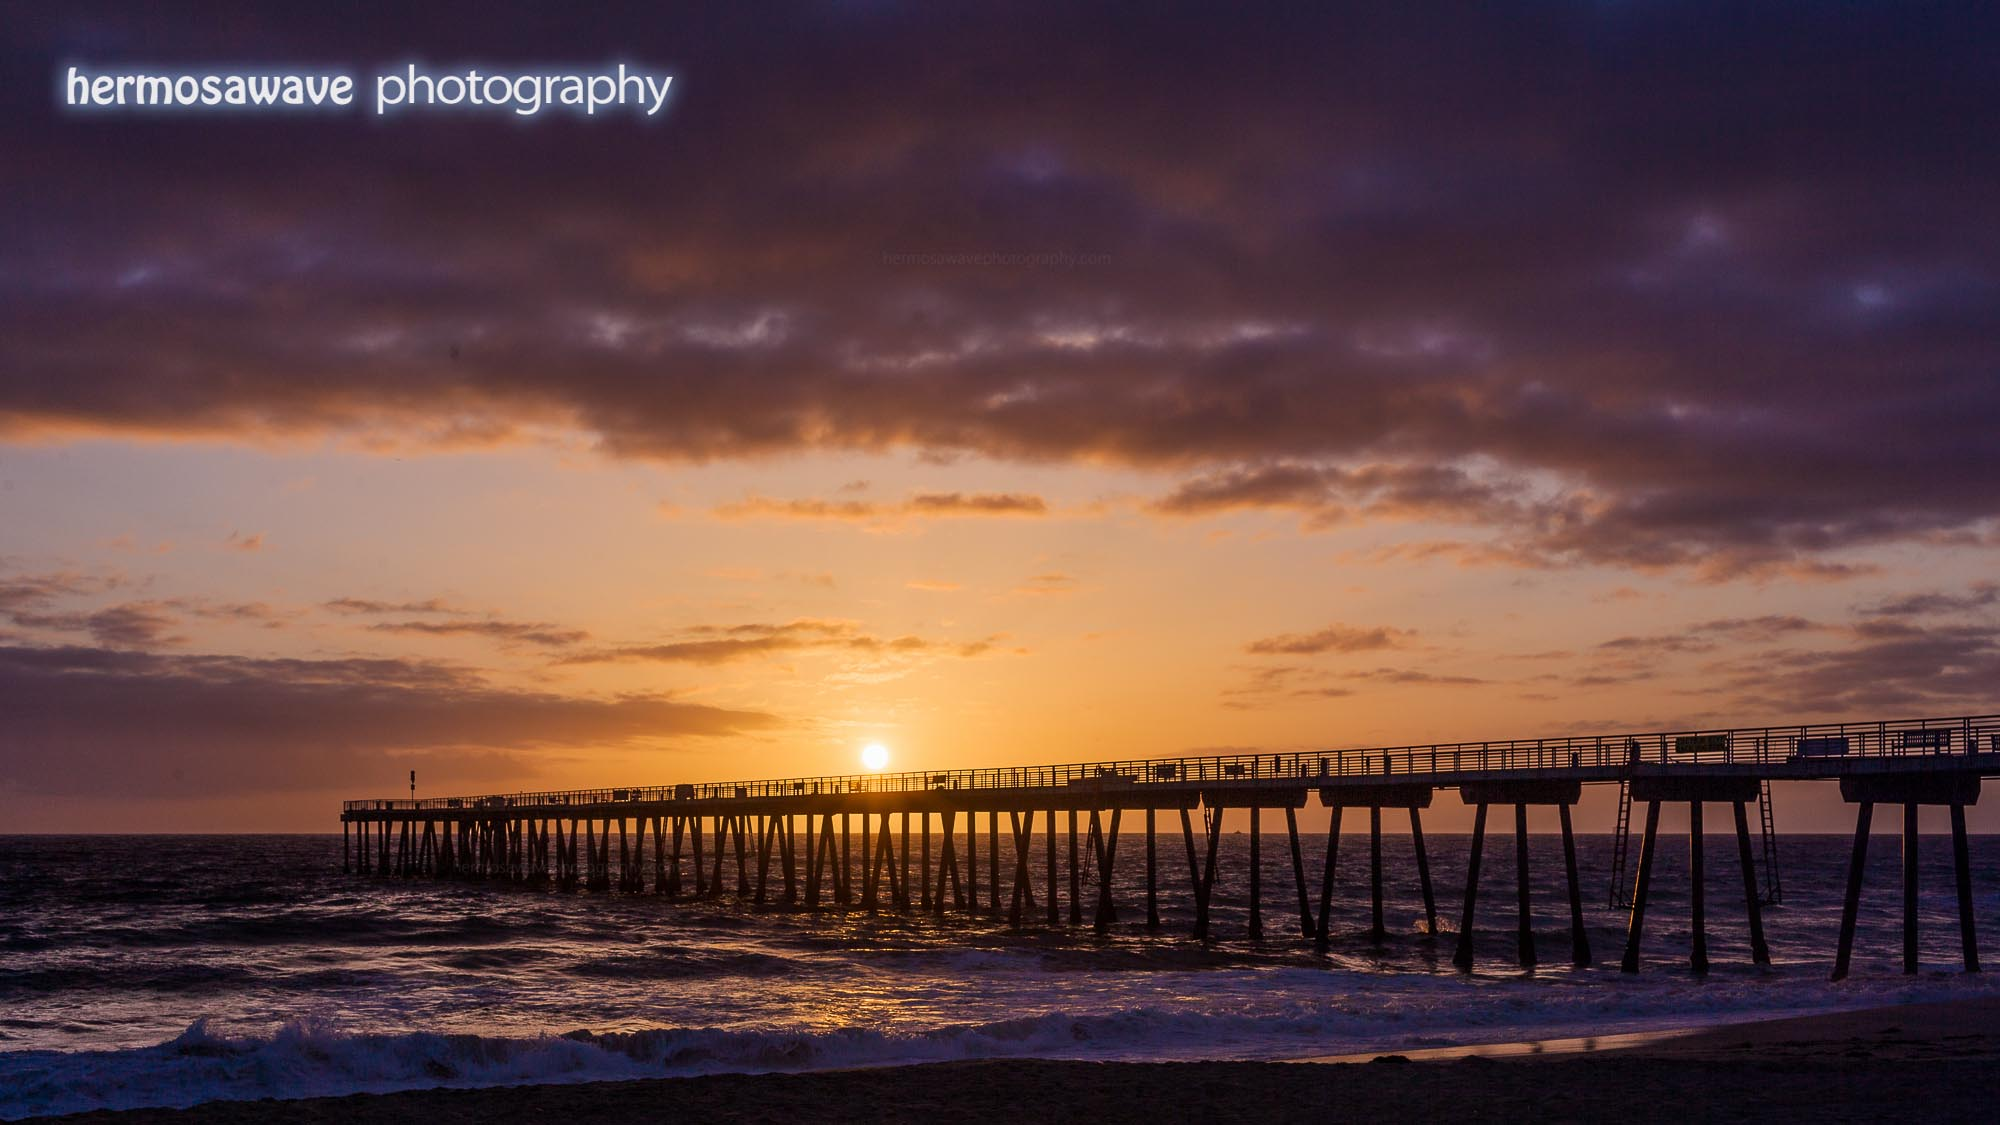 Sunset Over Hermosa Pier